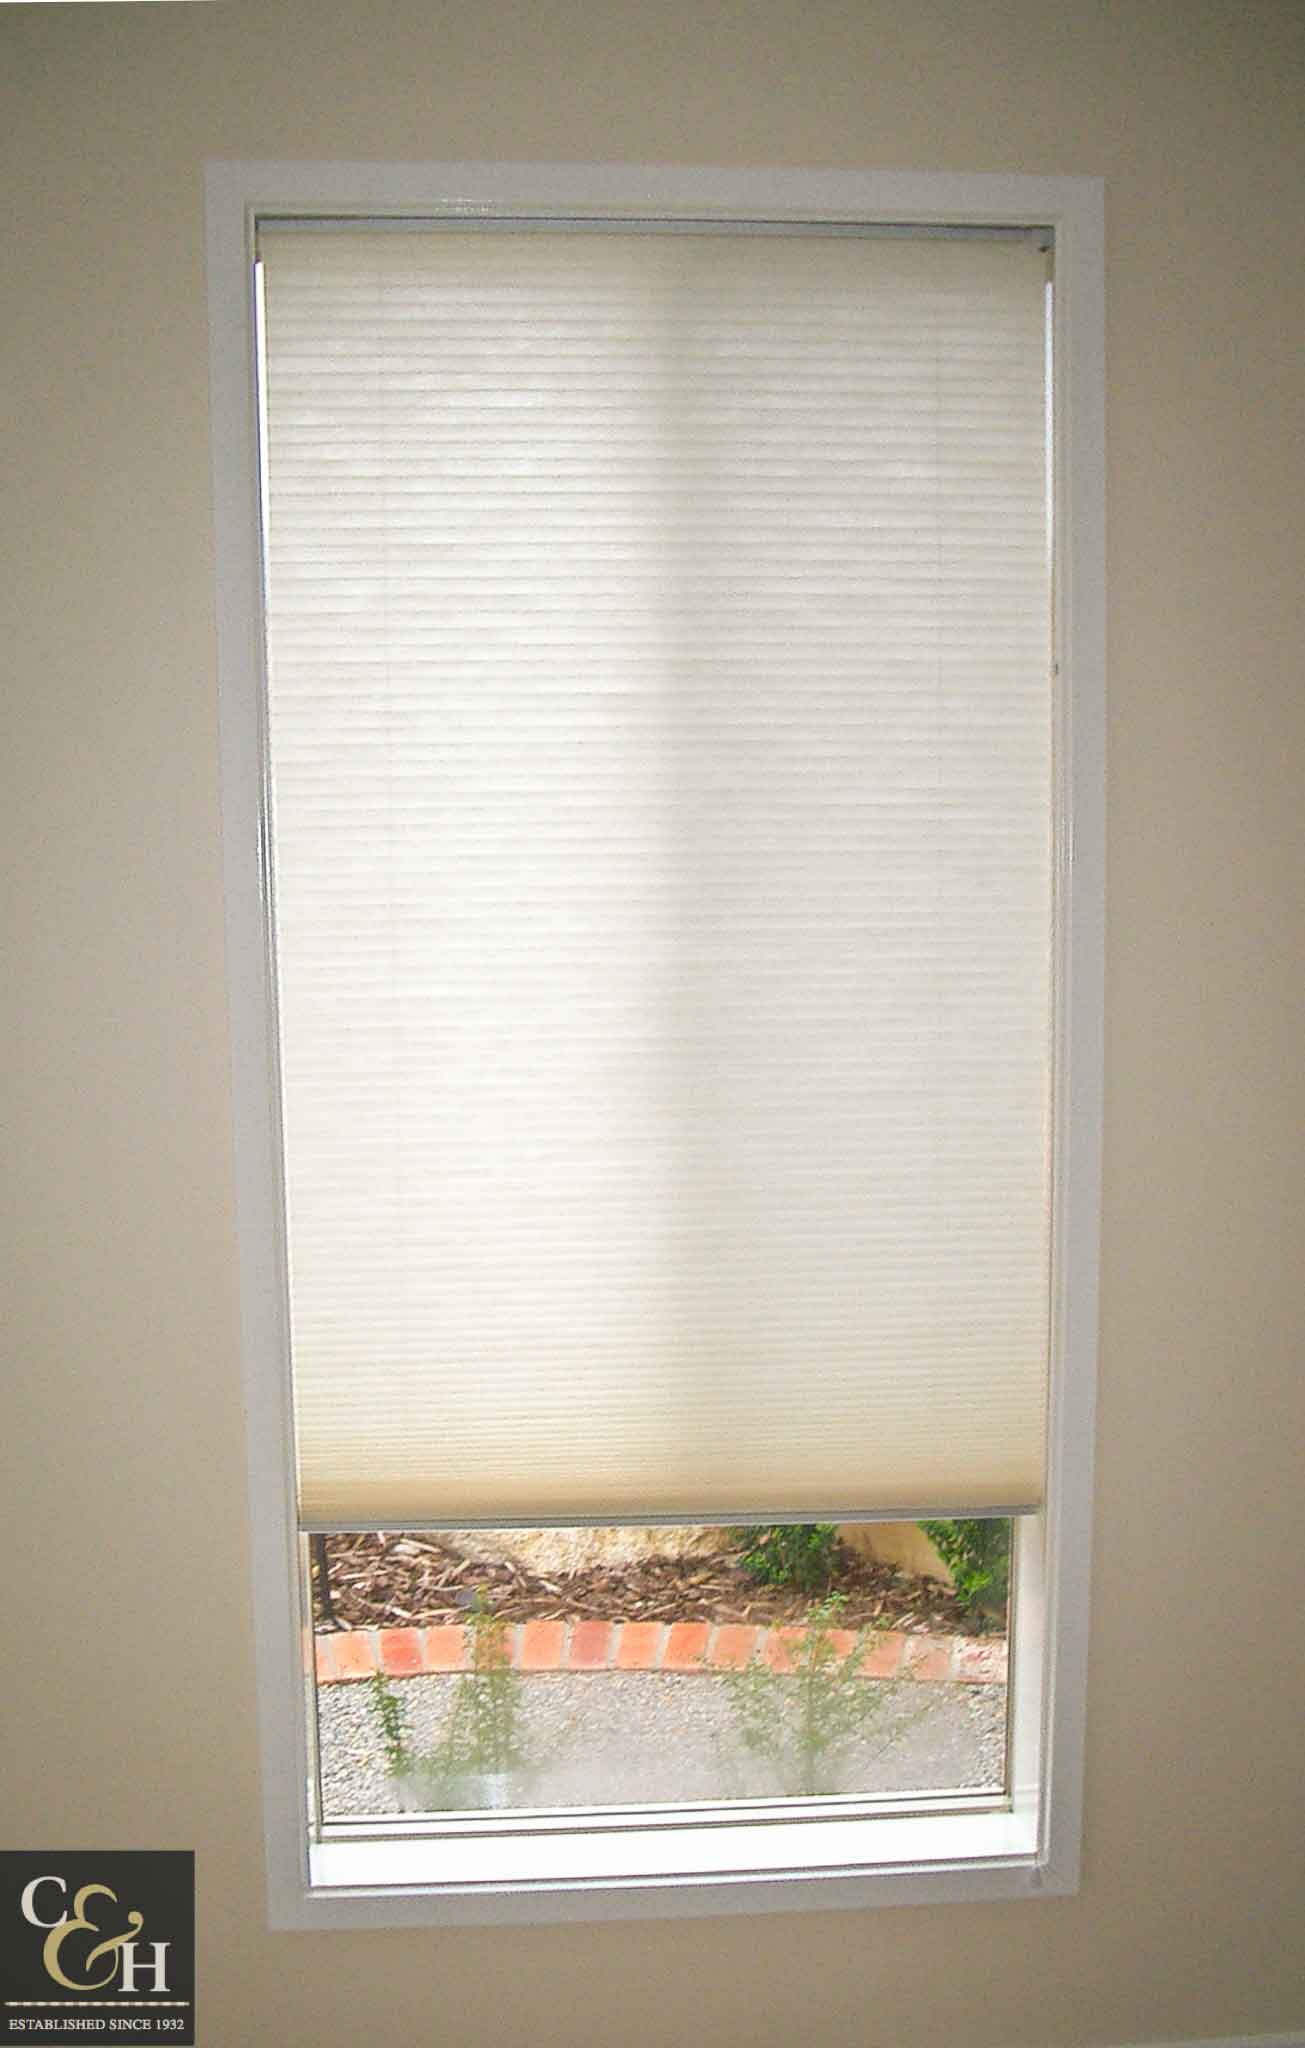 Honeycomb blinds 8 in a bathroom